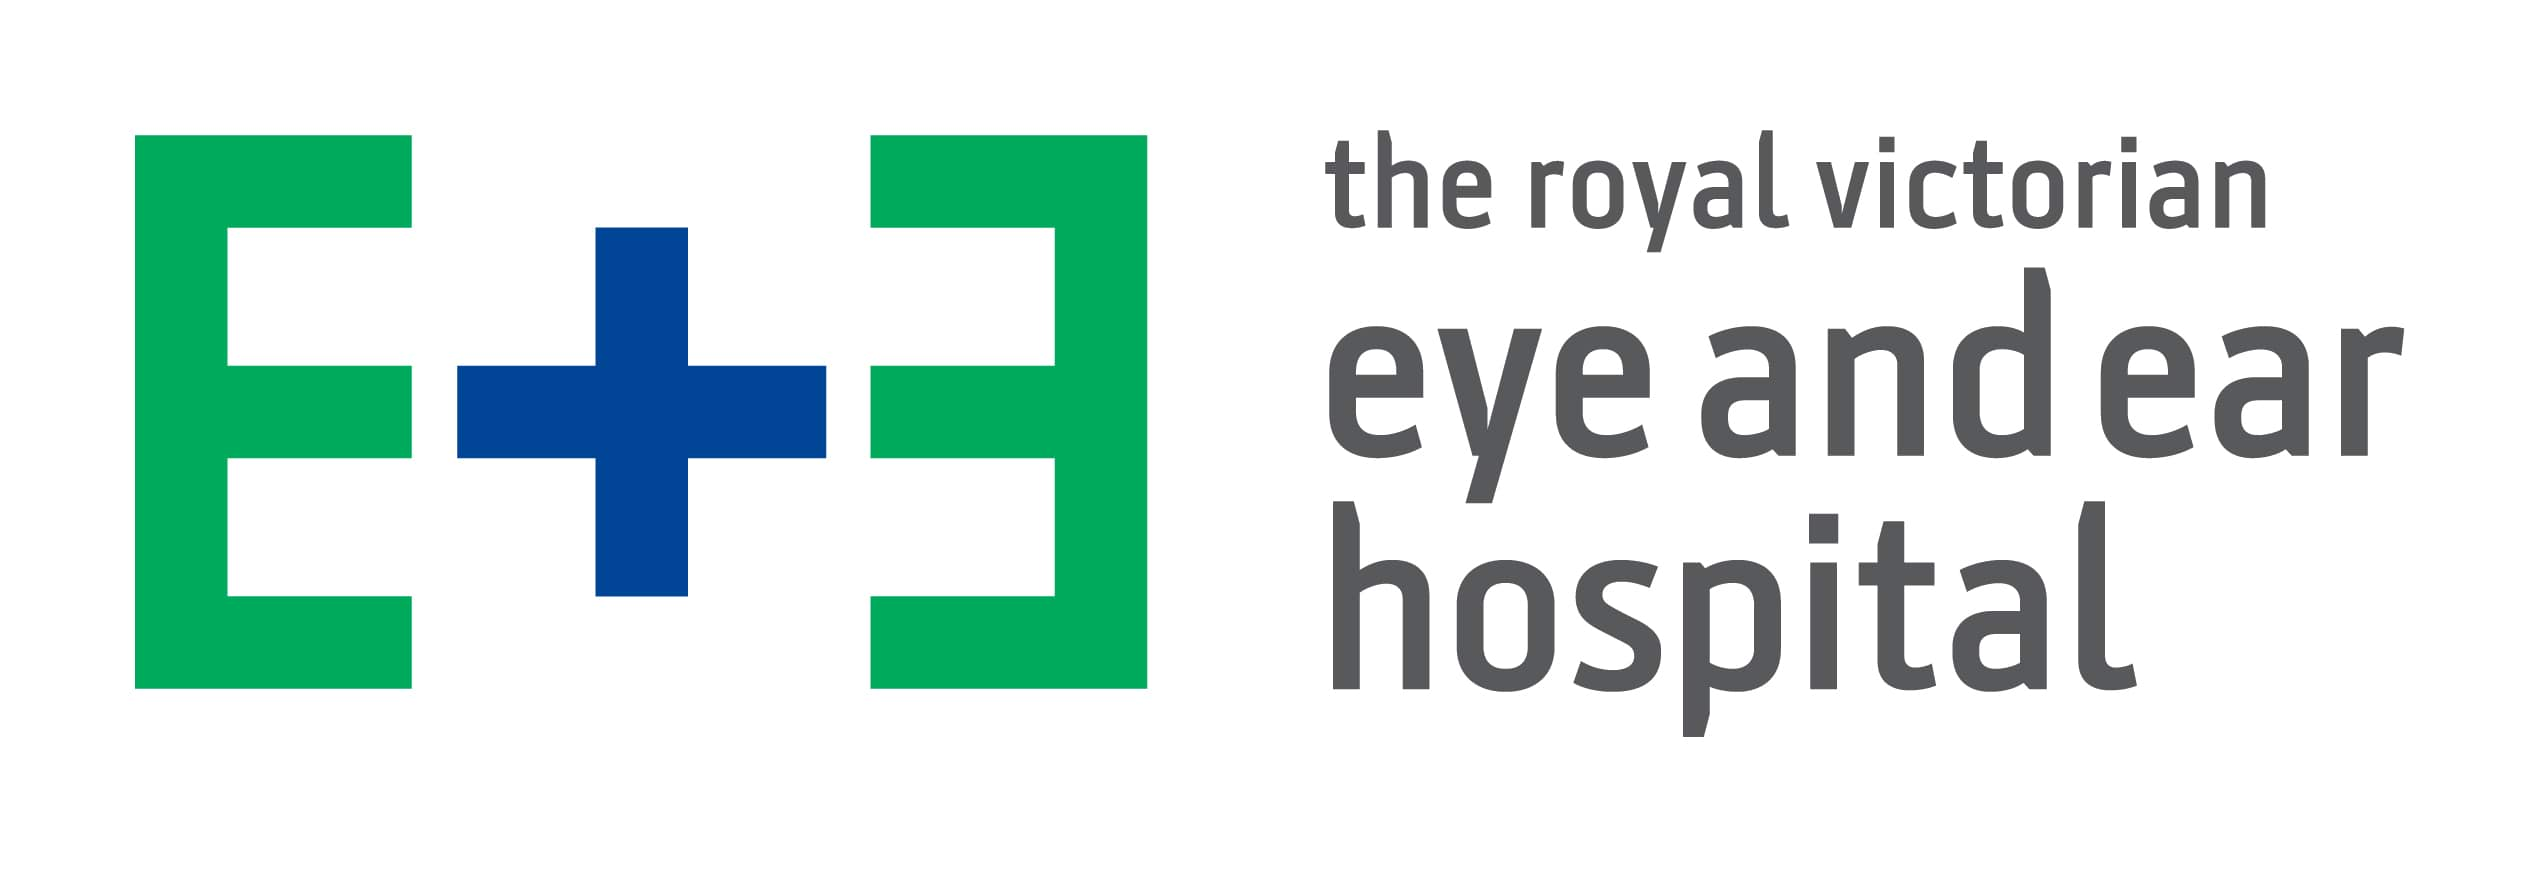 Royal Victorian Eye and Ear Hospital (RVEEH)